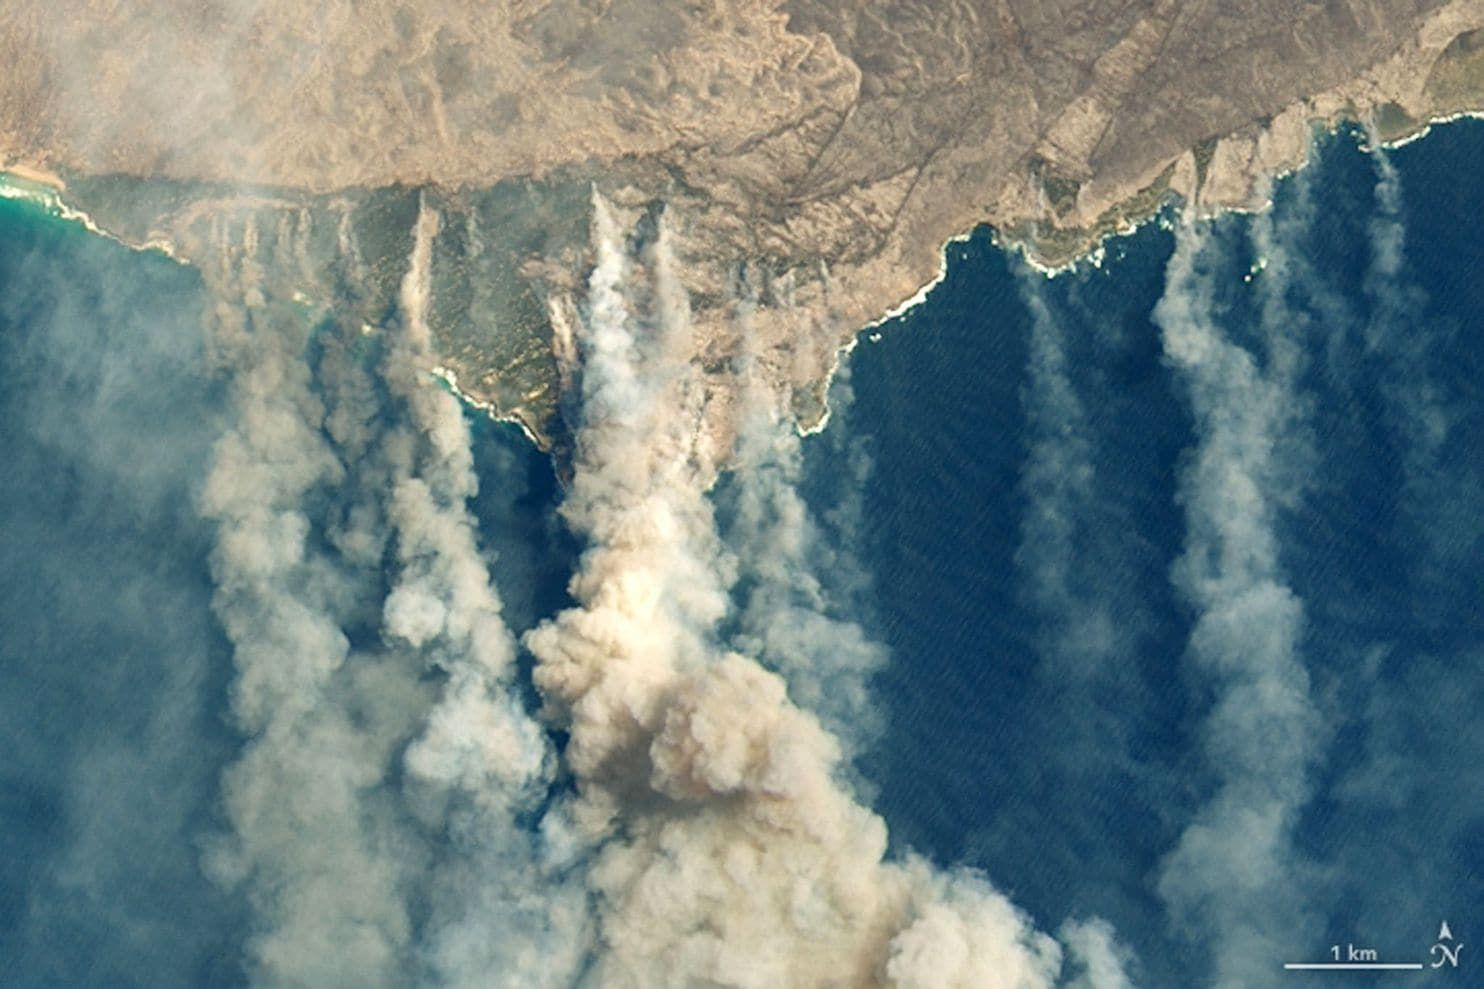 A 'megafire' measuring 1.5 million acres forms in